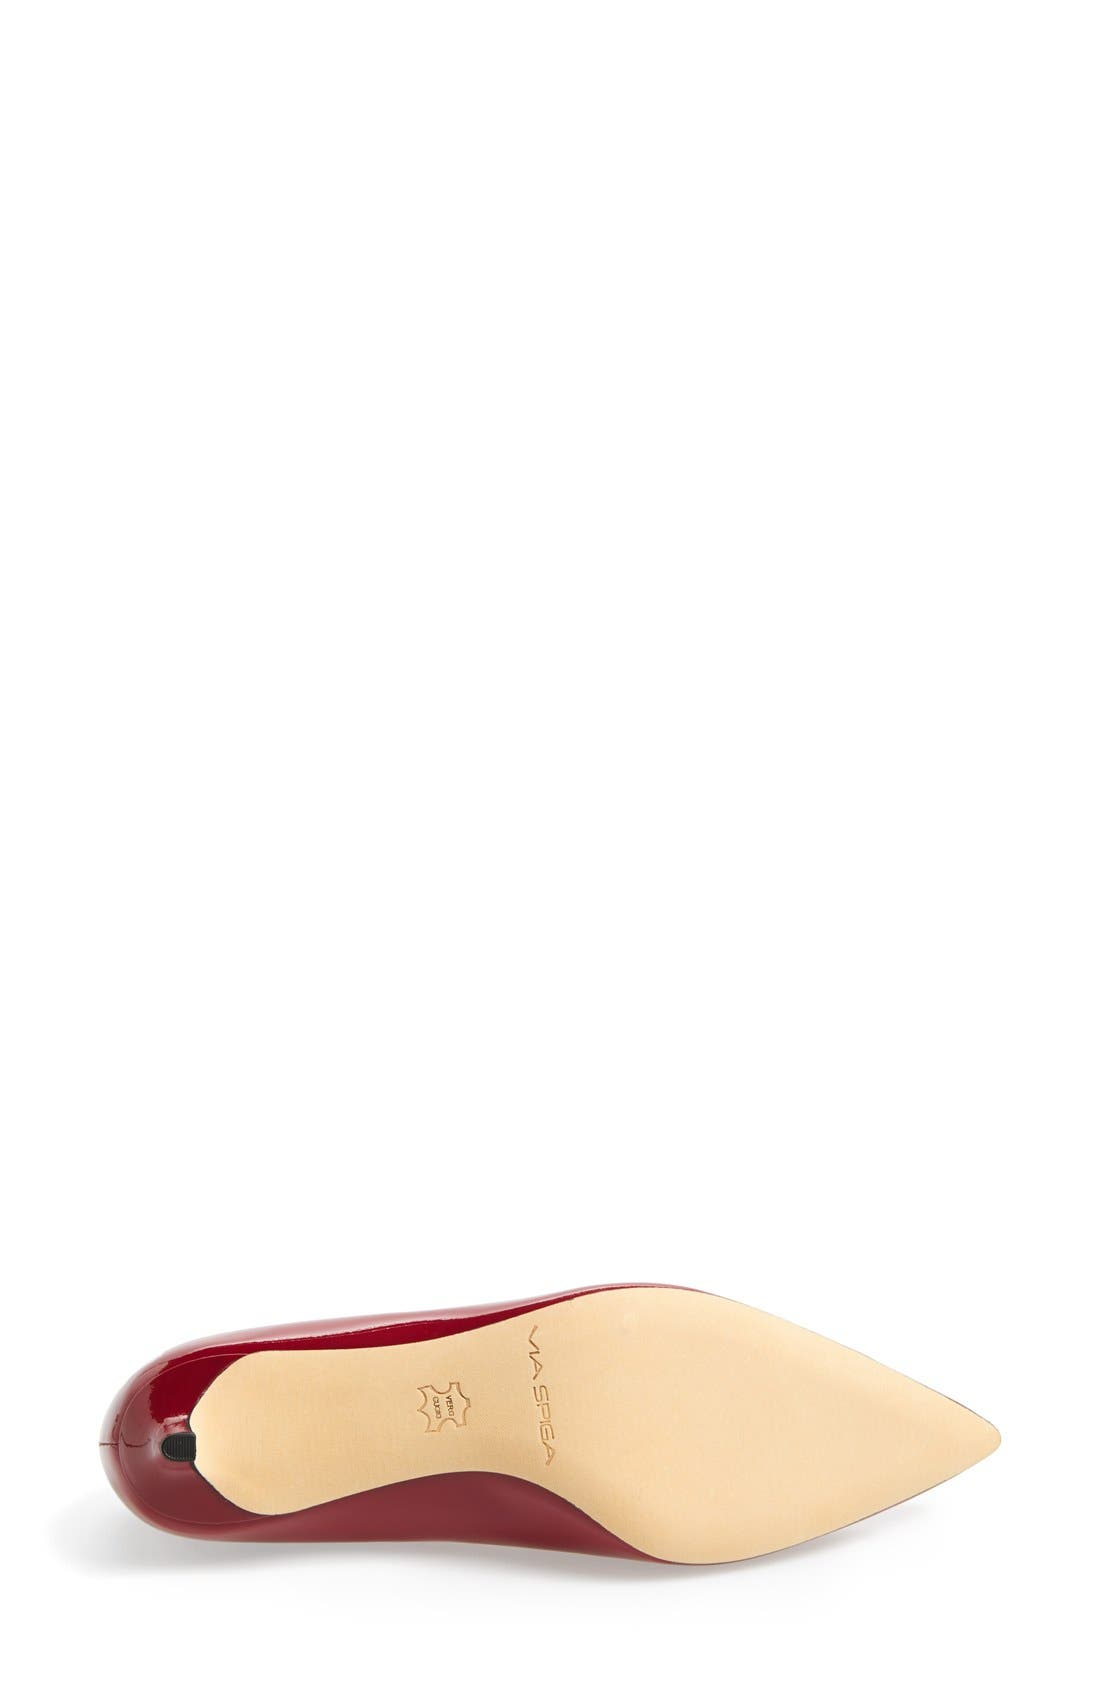 Alternate Image 3  - Via Spiga 'Hue' Pointy Toe Pump (Women)